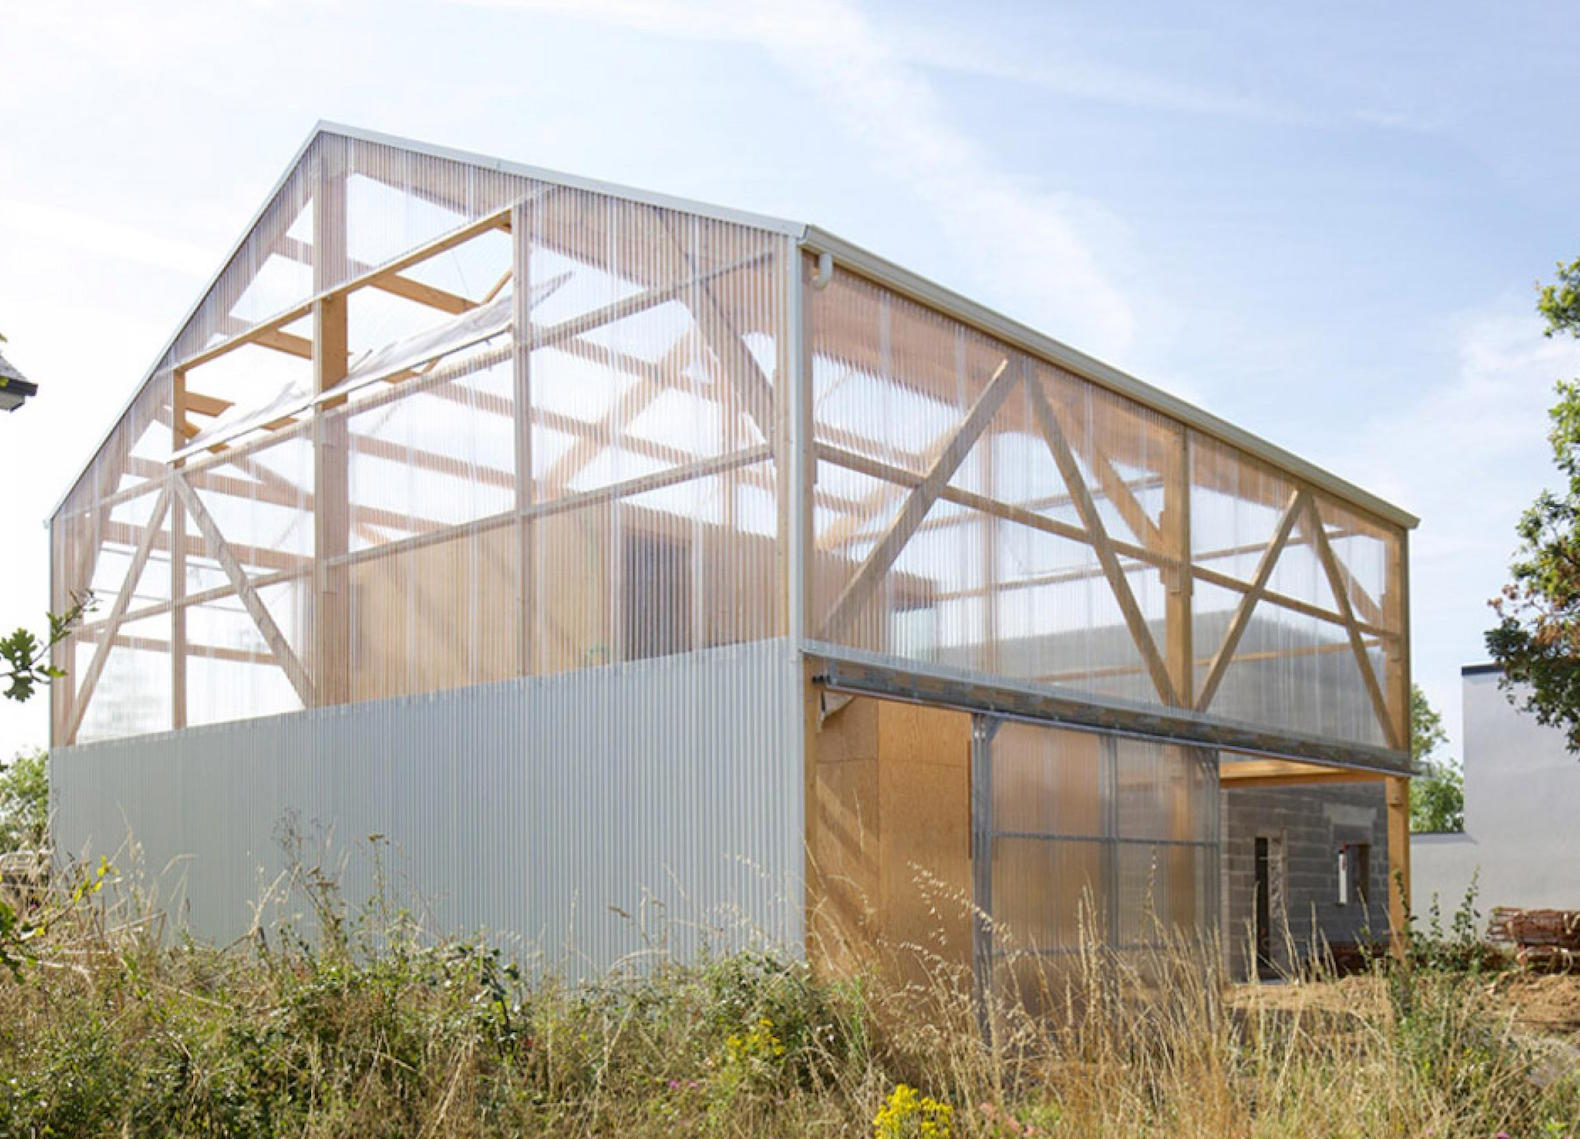 Wonderful Does The Bare Bones Maison D House Take Utilitarian Architecture Too Far?